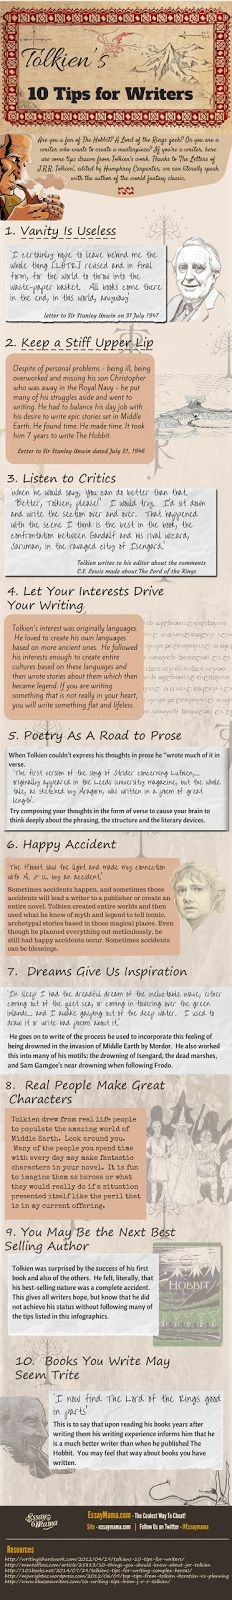 Tolkien's 10 Tips for Writers